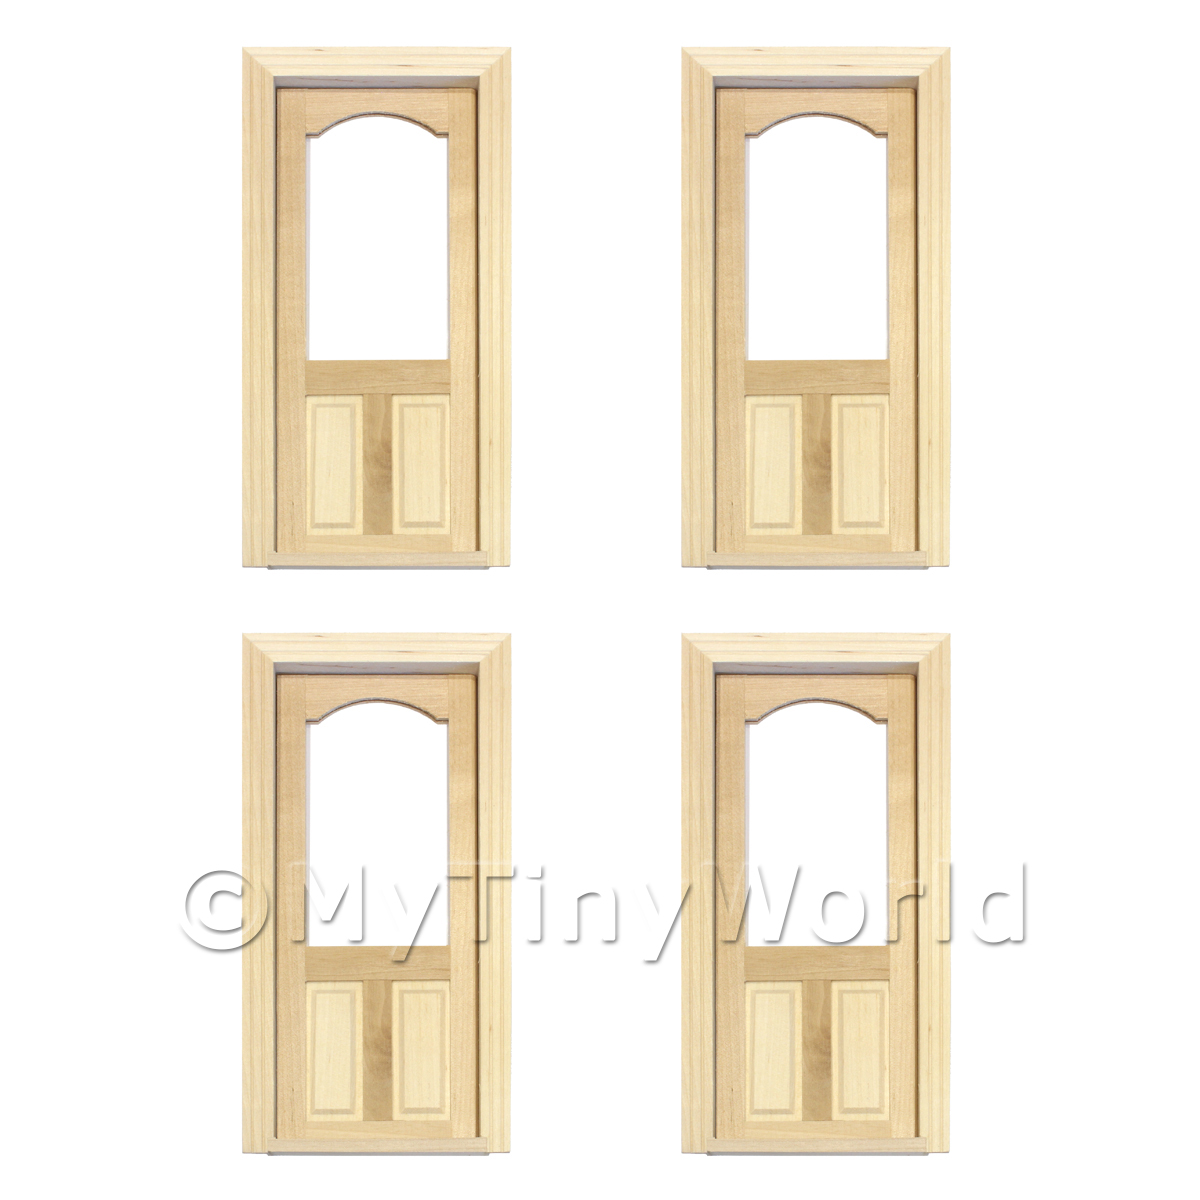 4 x Dolls House Decorative Wood Door With Glazed Upper Panel